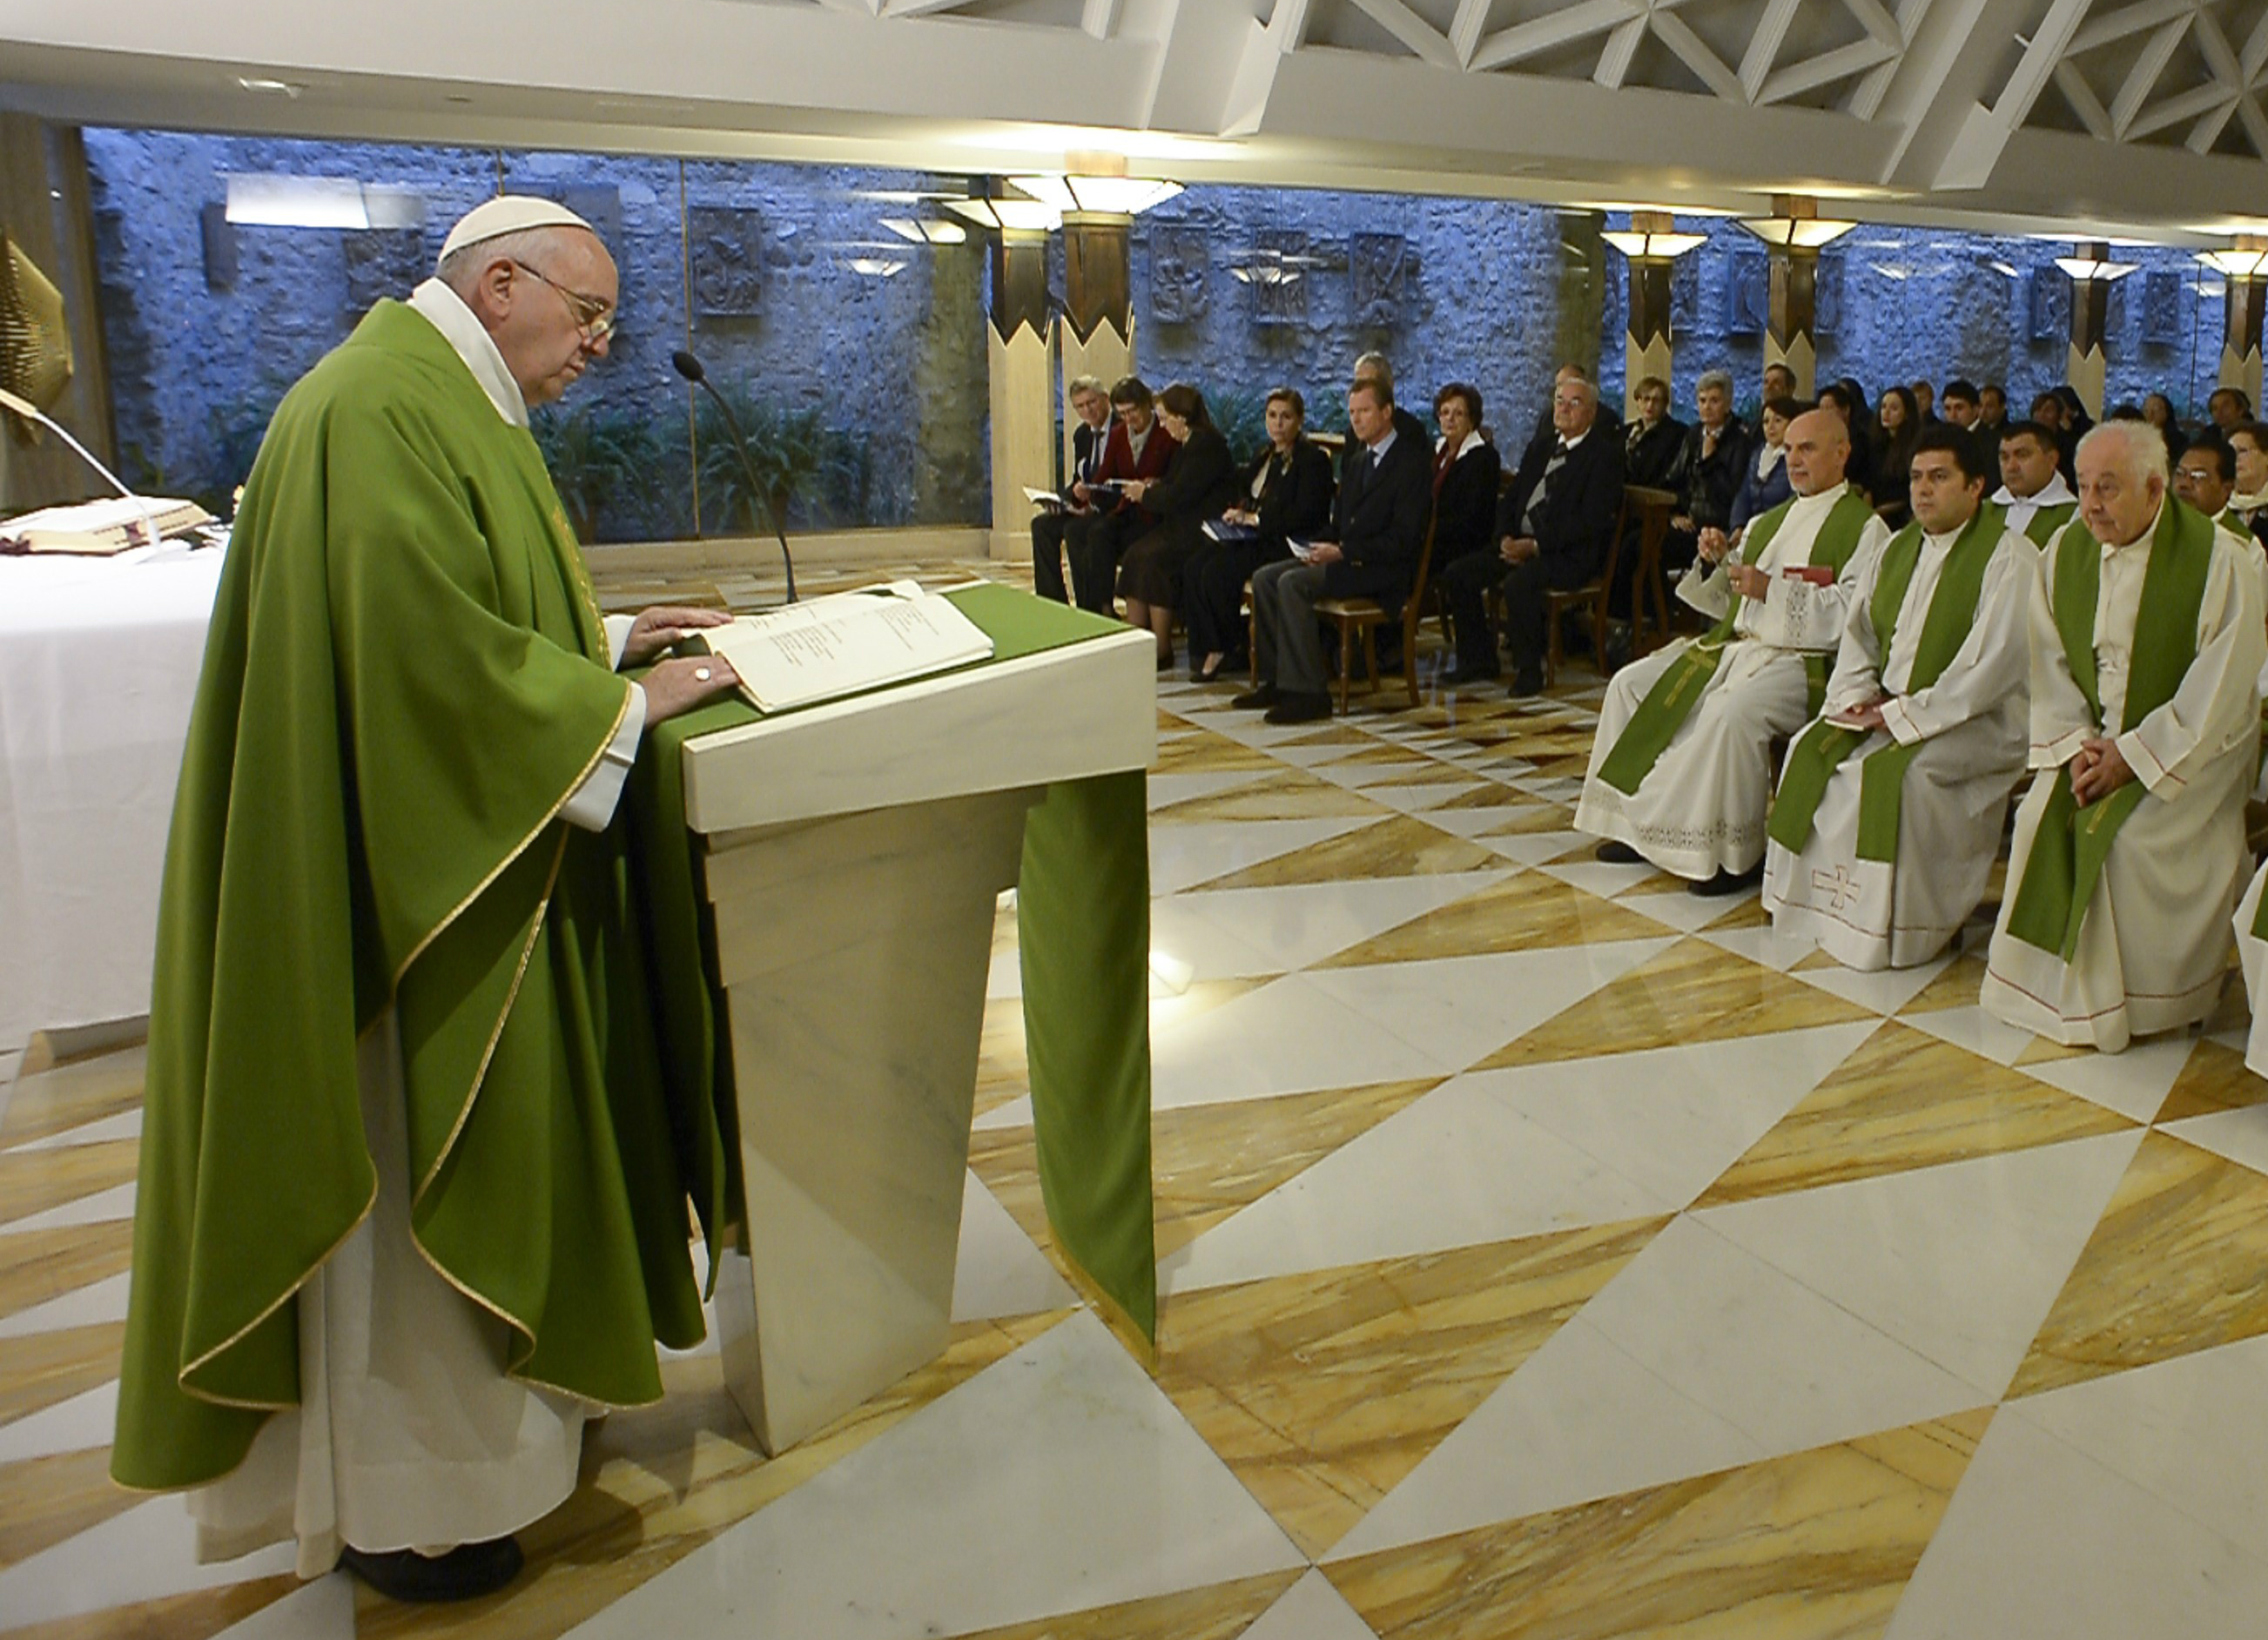 Pope Francis during the Morning Mass in Santa Marta